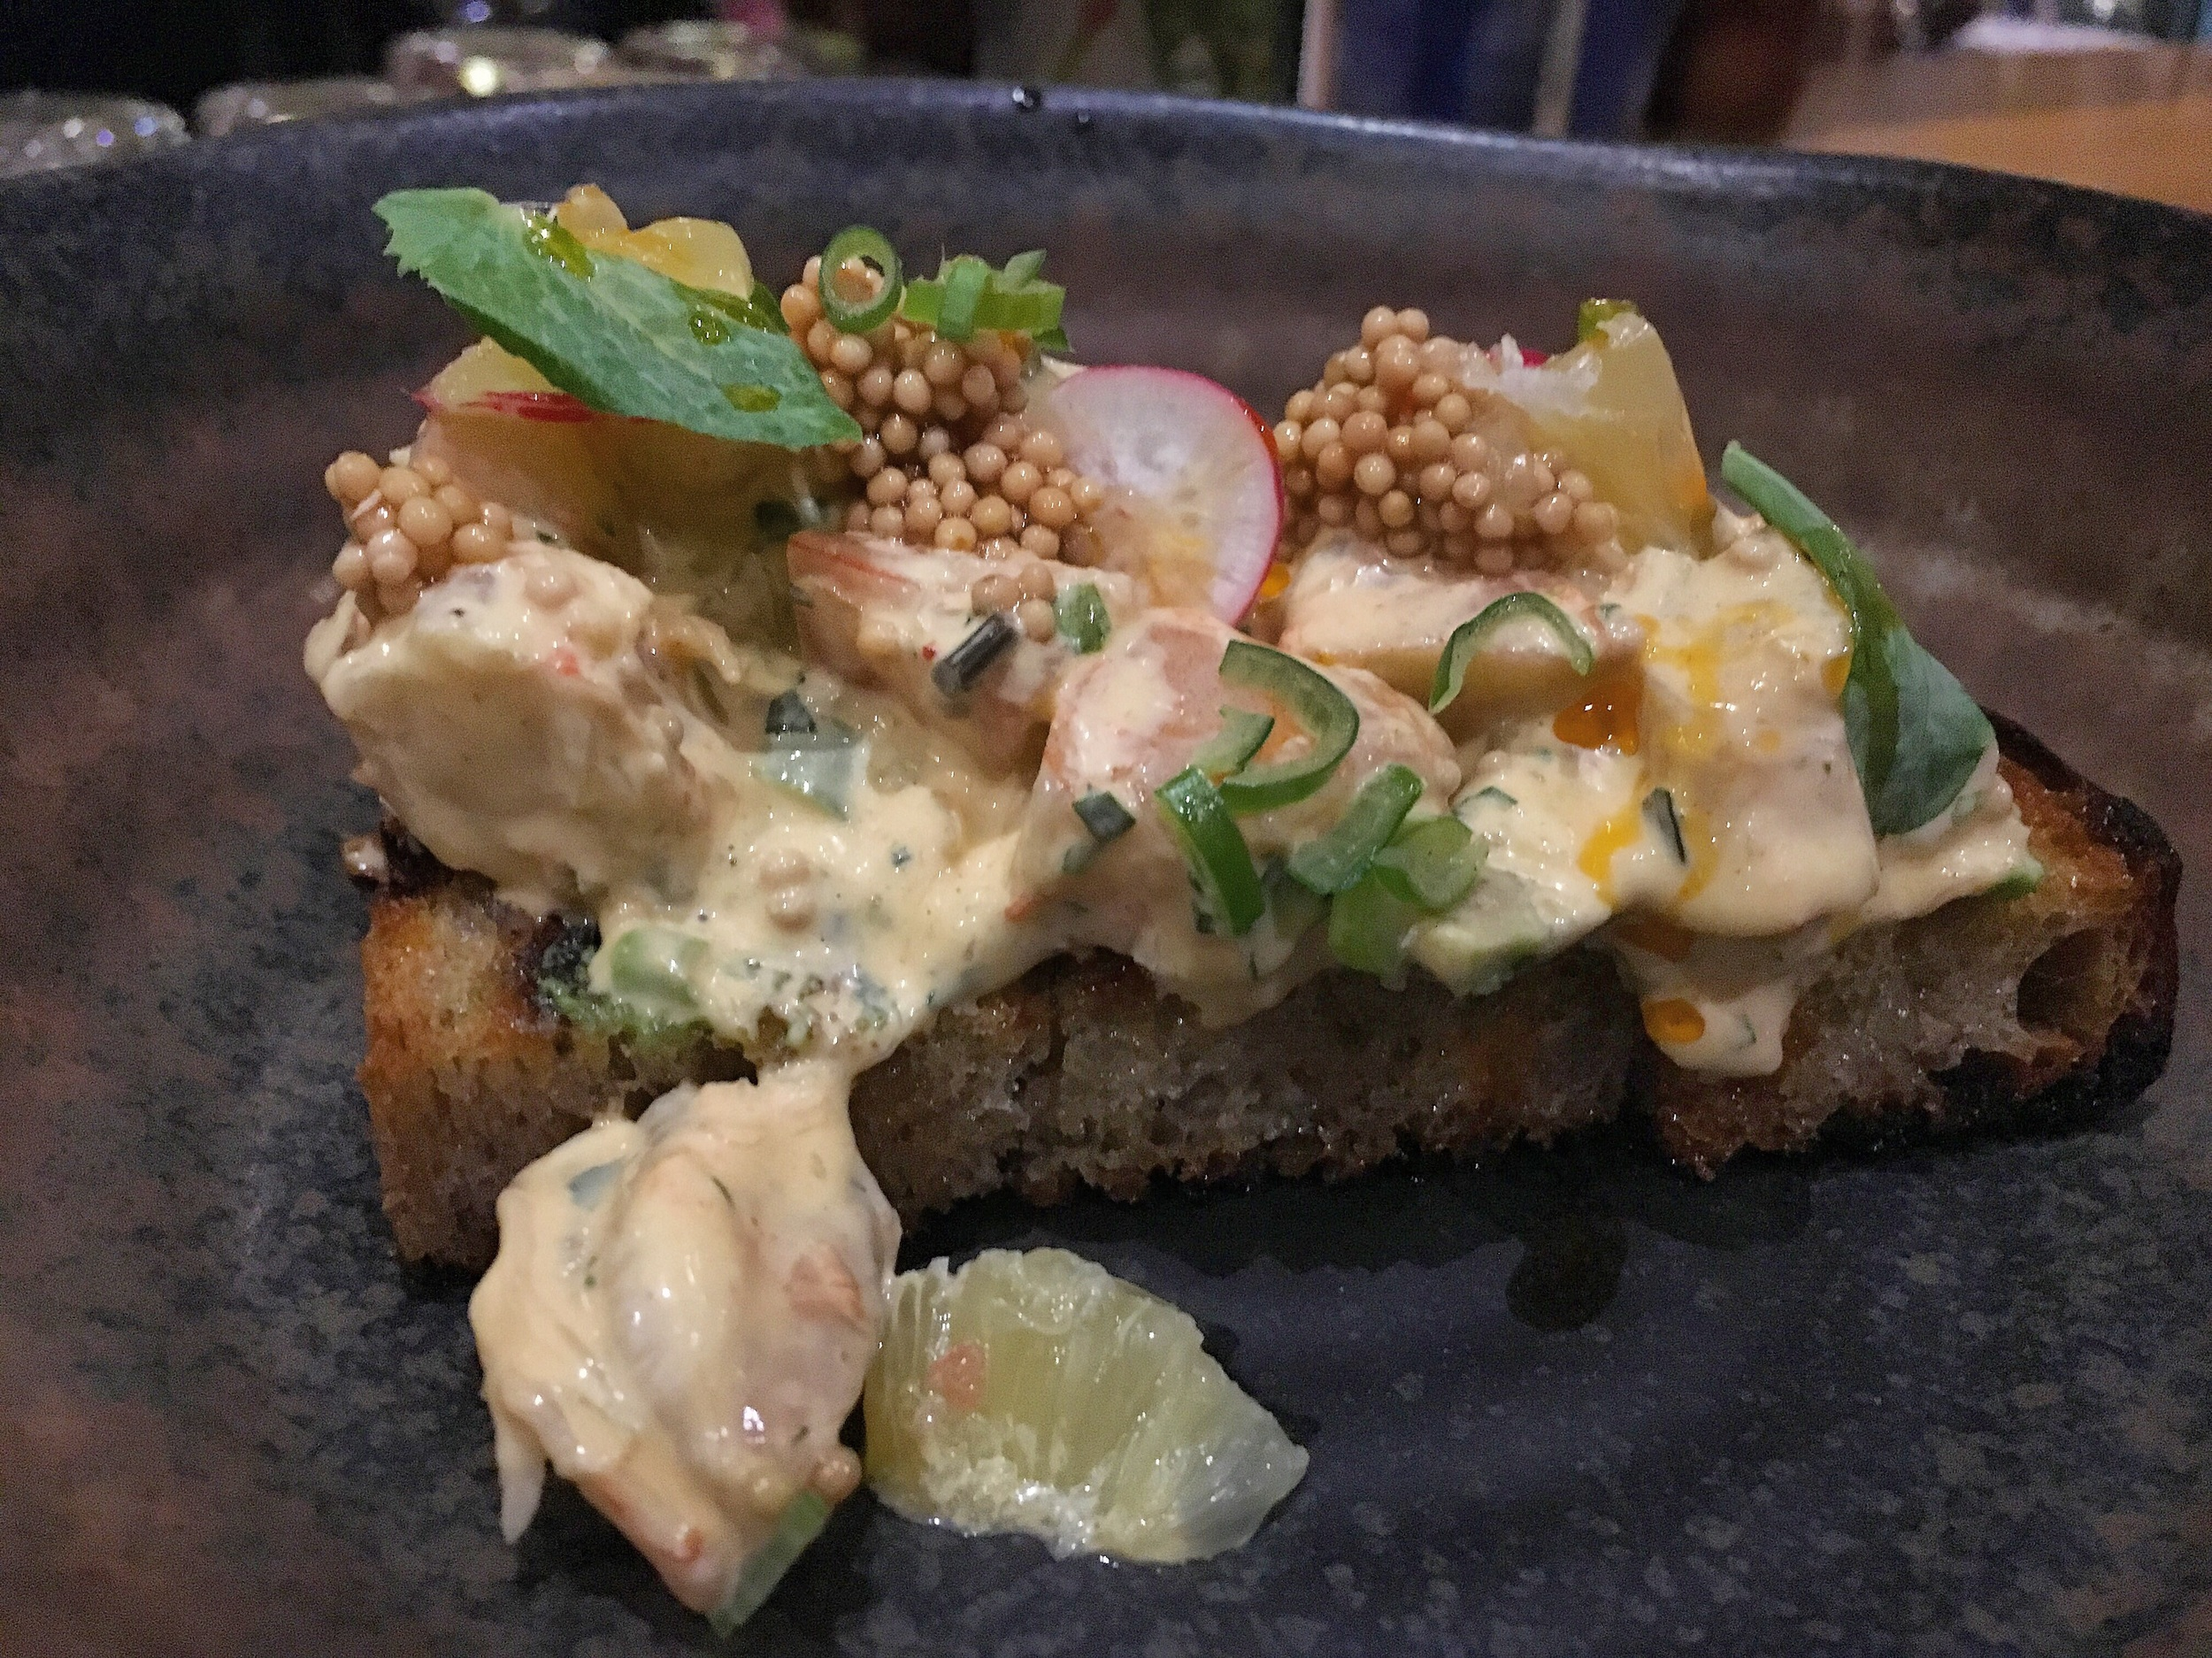 shrimp, avocado, radish grapefruit and mustard seed on light and fluffy rye toast